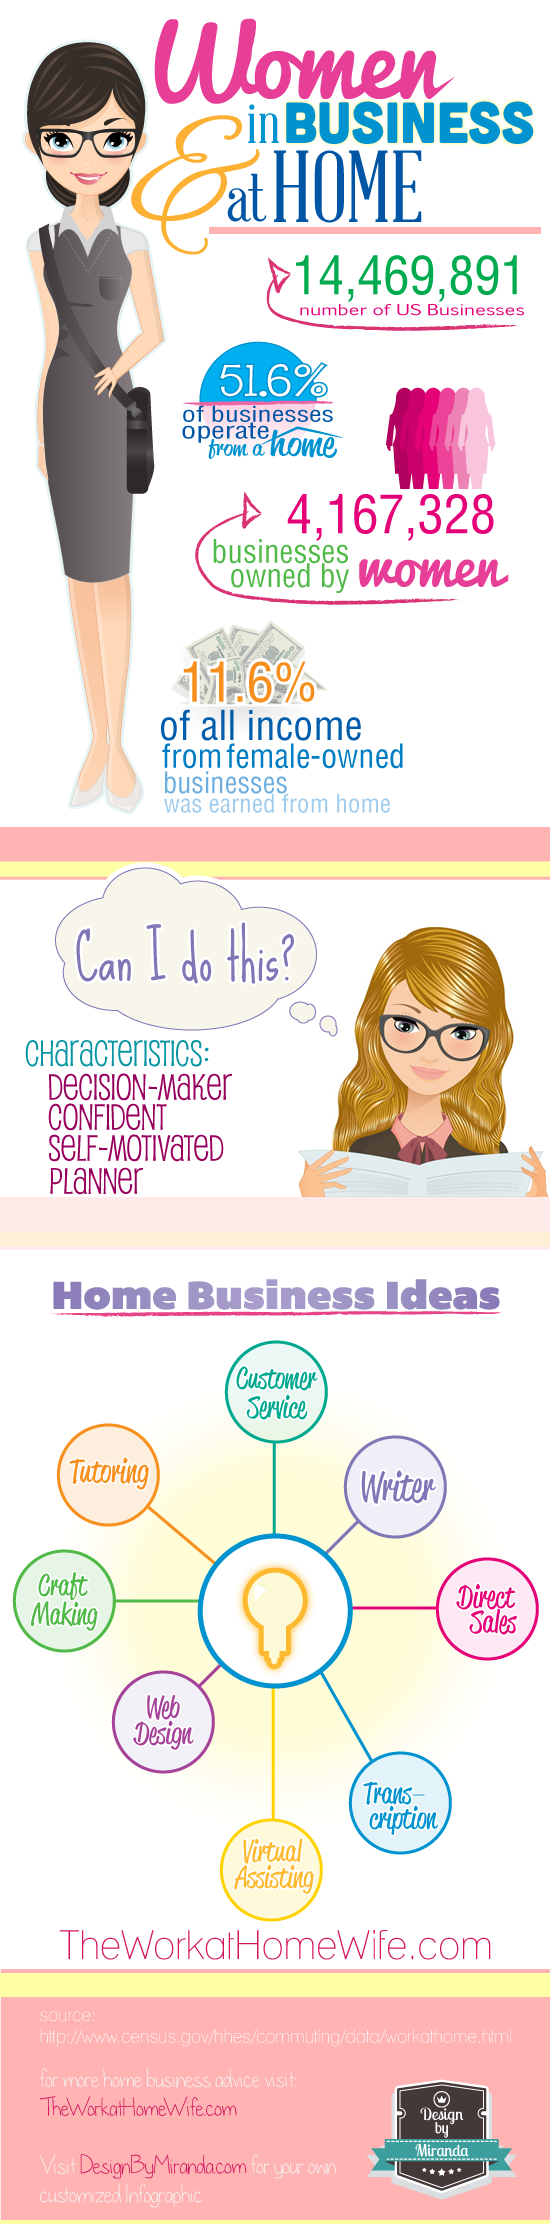 Women In Home-Based Business: Infographic | Business Startup ...